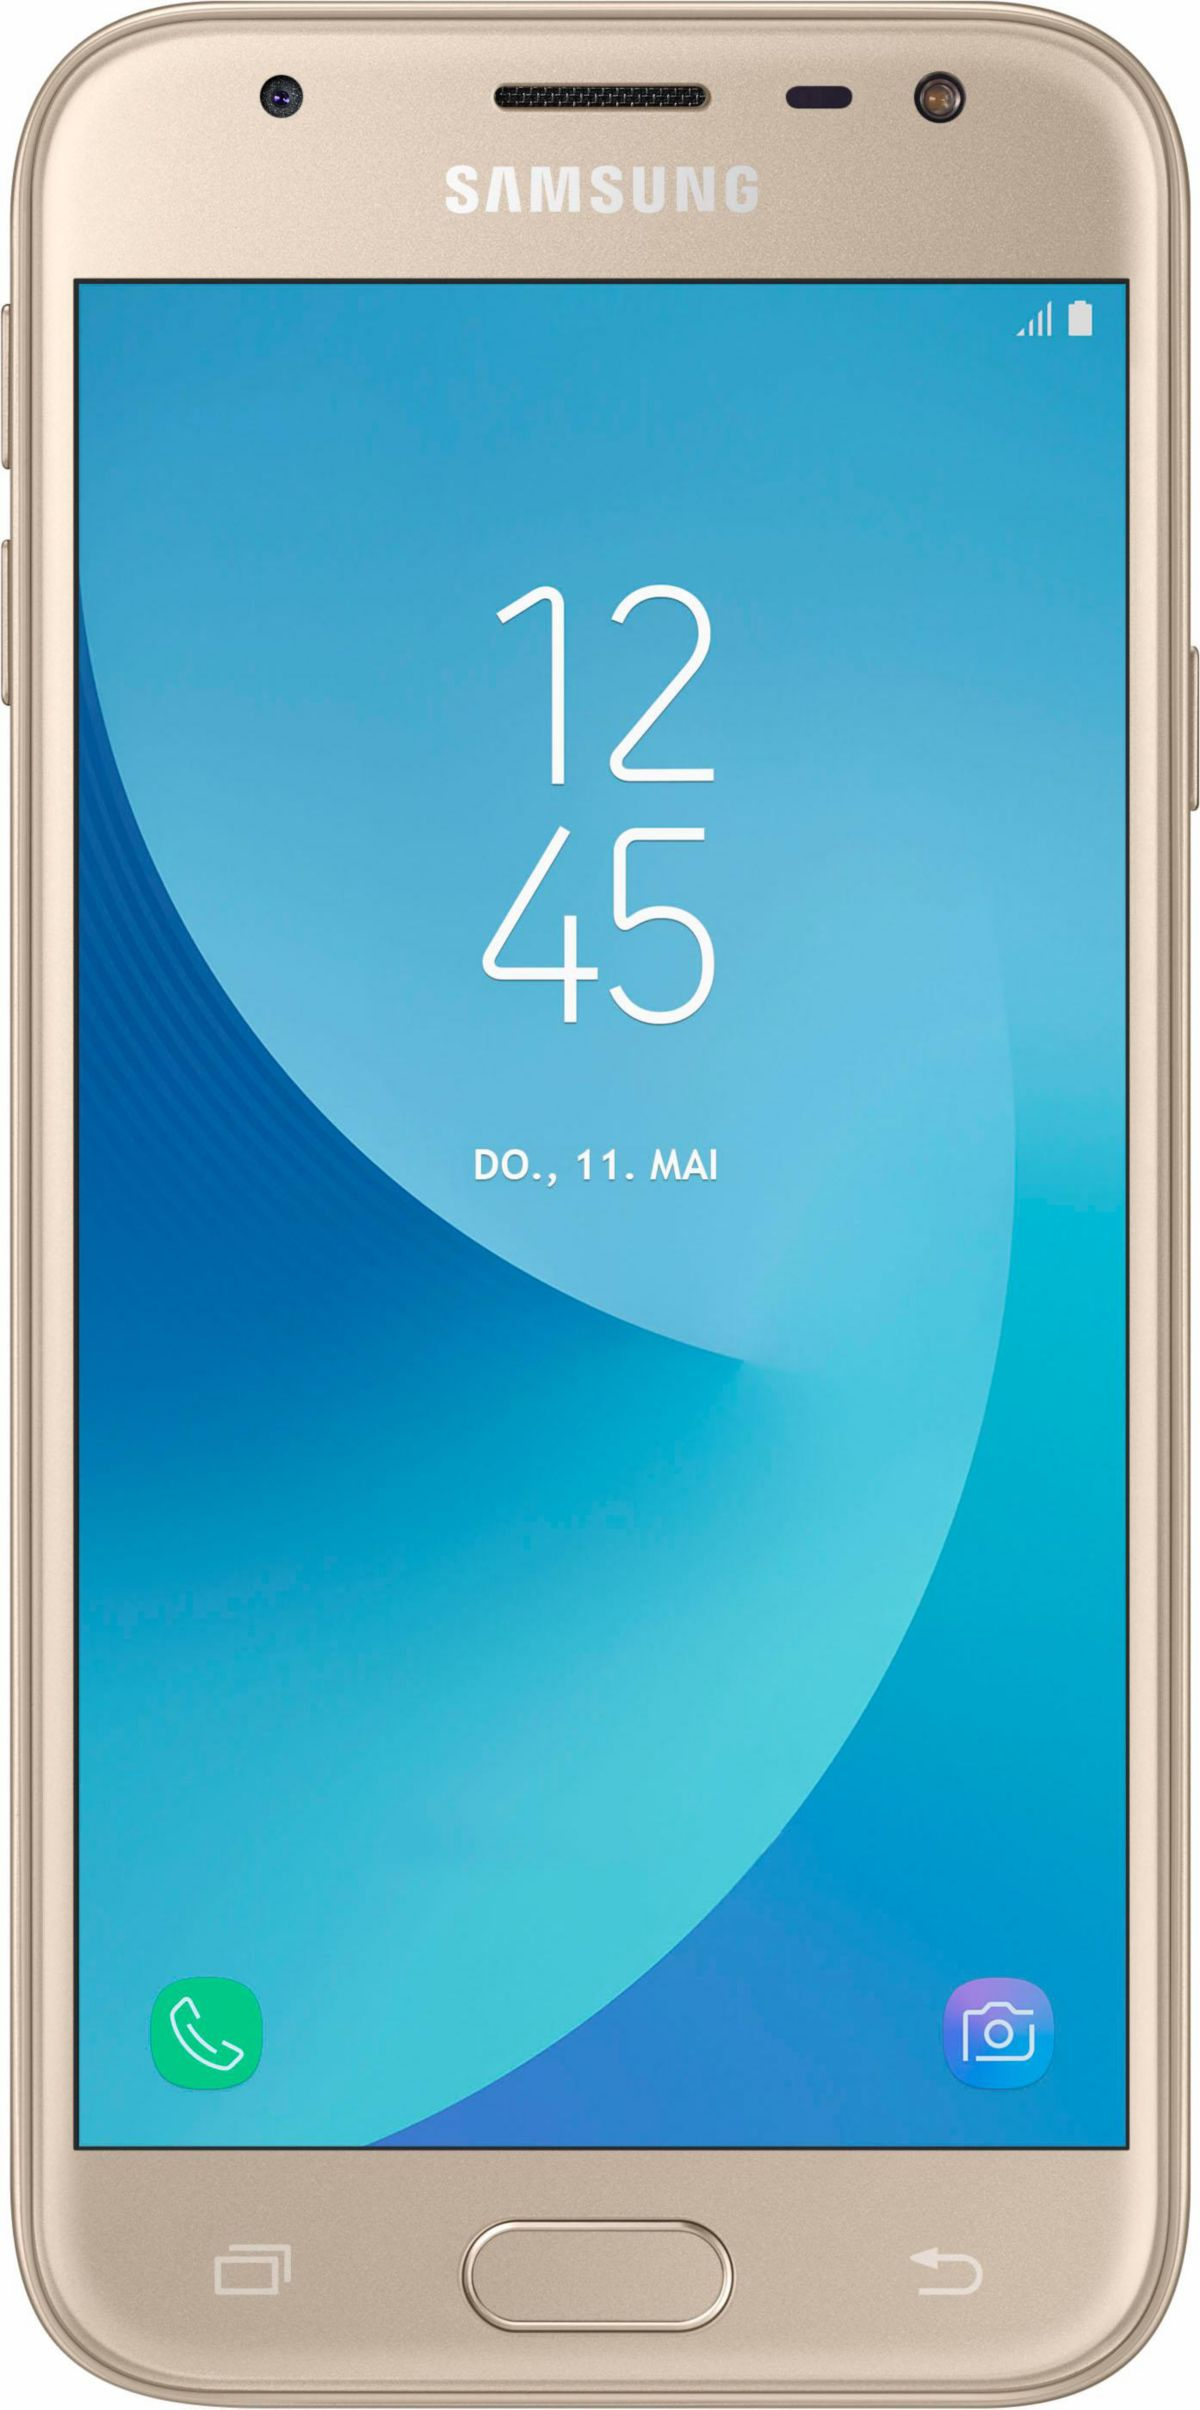 Samsung Galaxy J3 2017 DUOS Smartphone 12 7 cm 5 Zoll Display LTE 4G Android 7 0